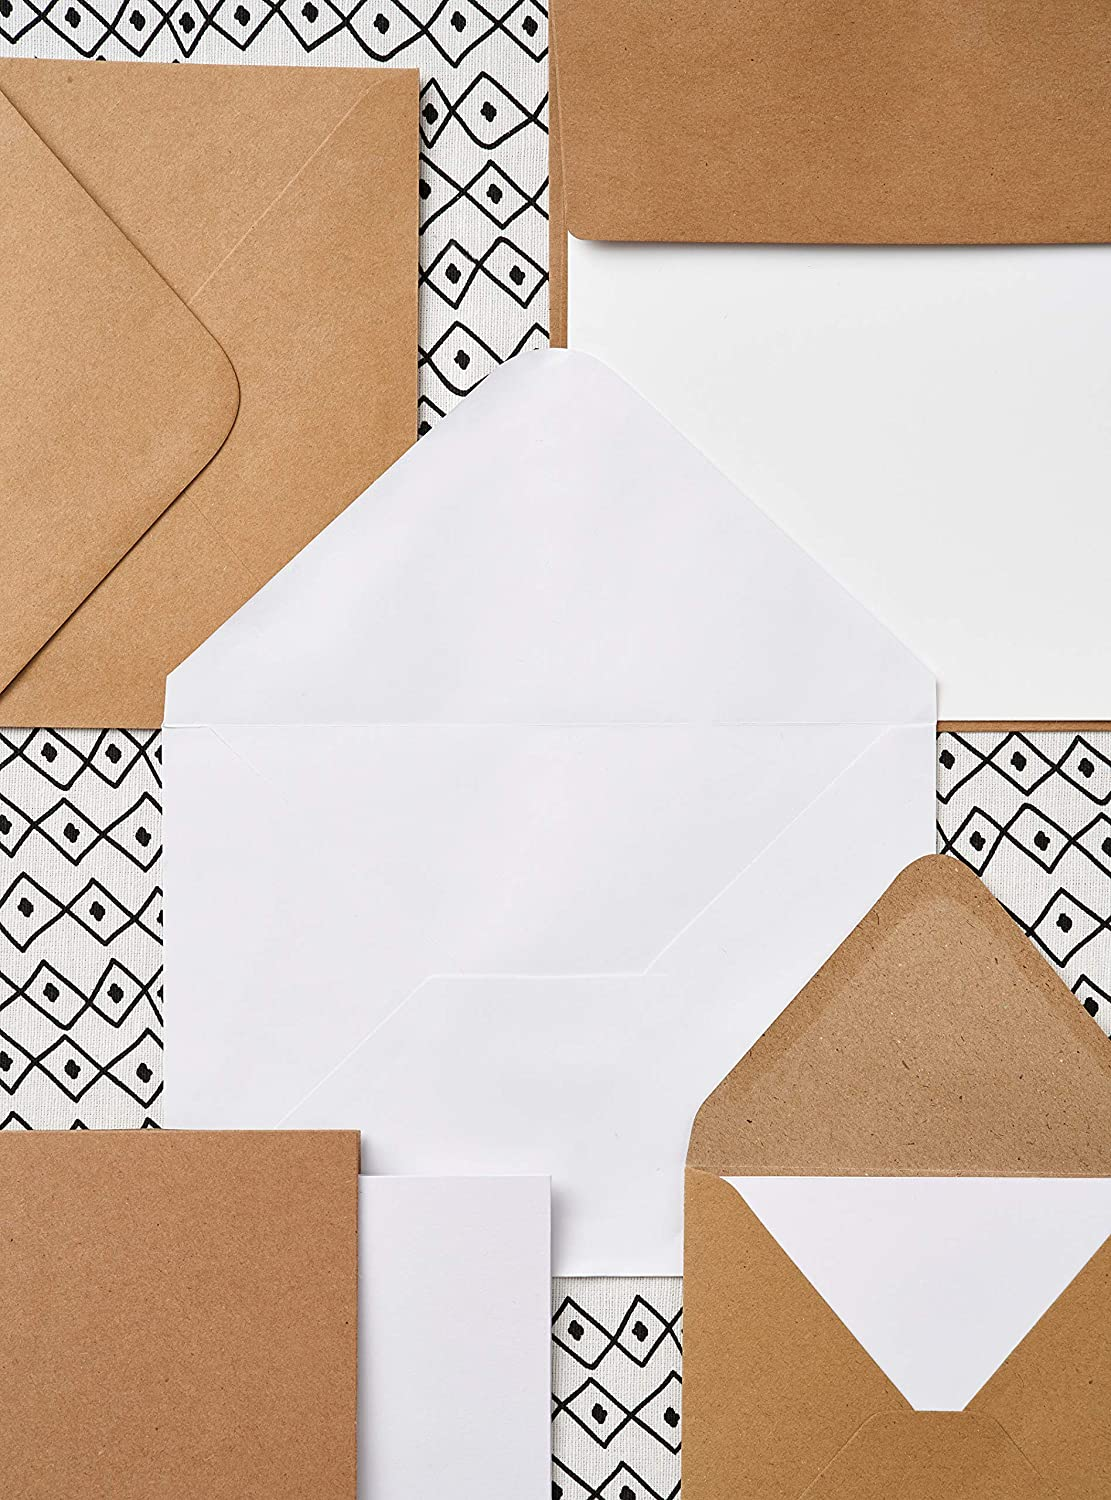 Pack Of 20 Anitas 5 x 7-inch 240 Gsm Textured Cards And Envelopes Cream